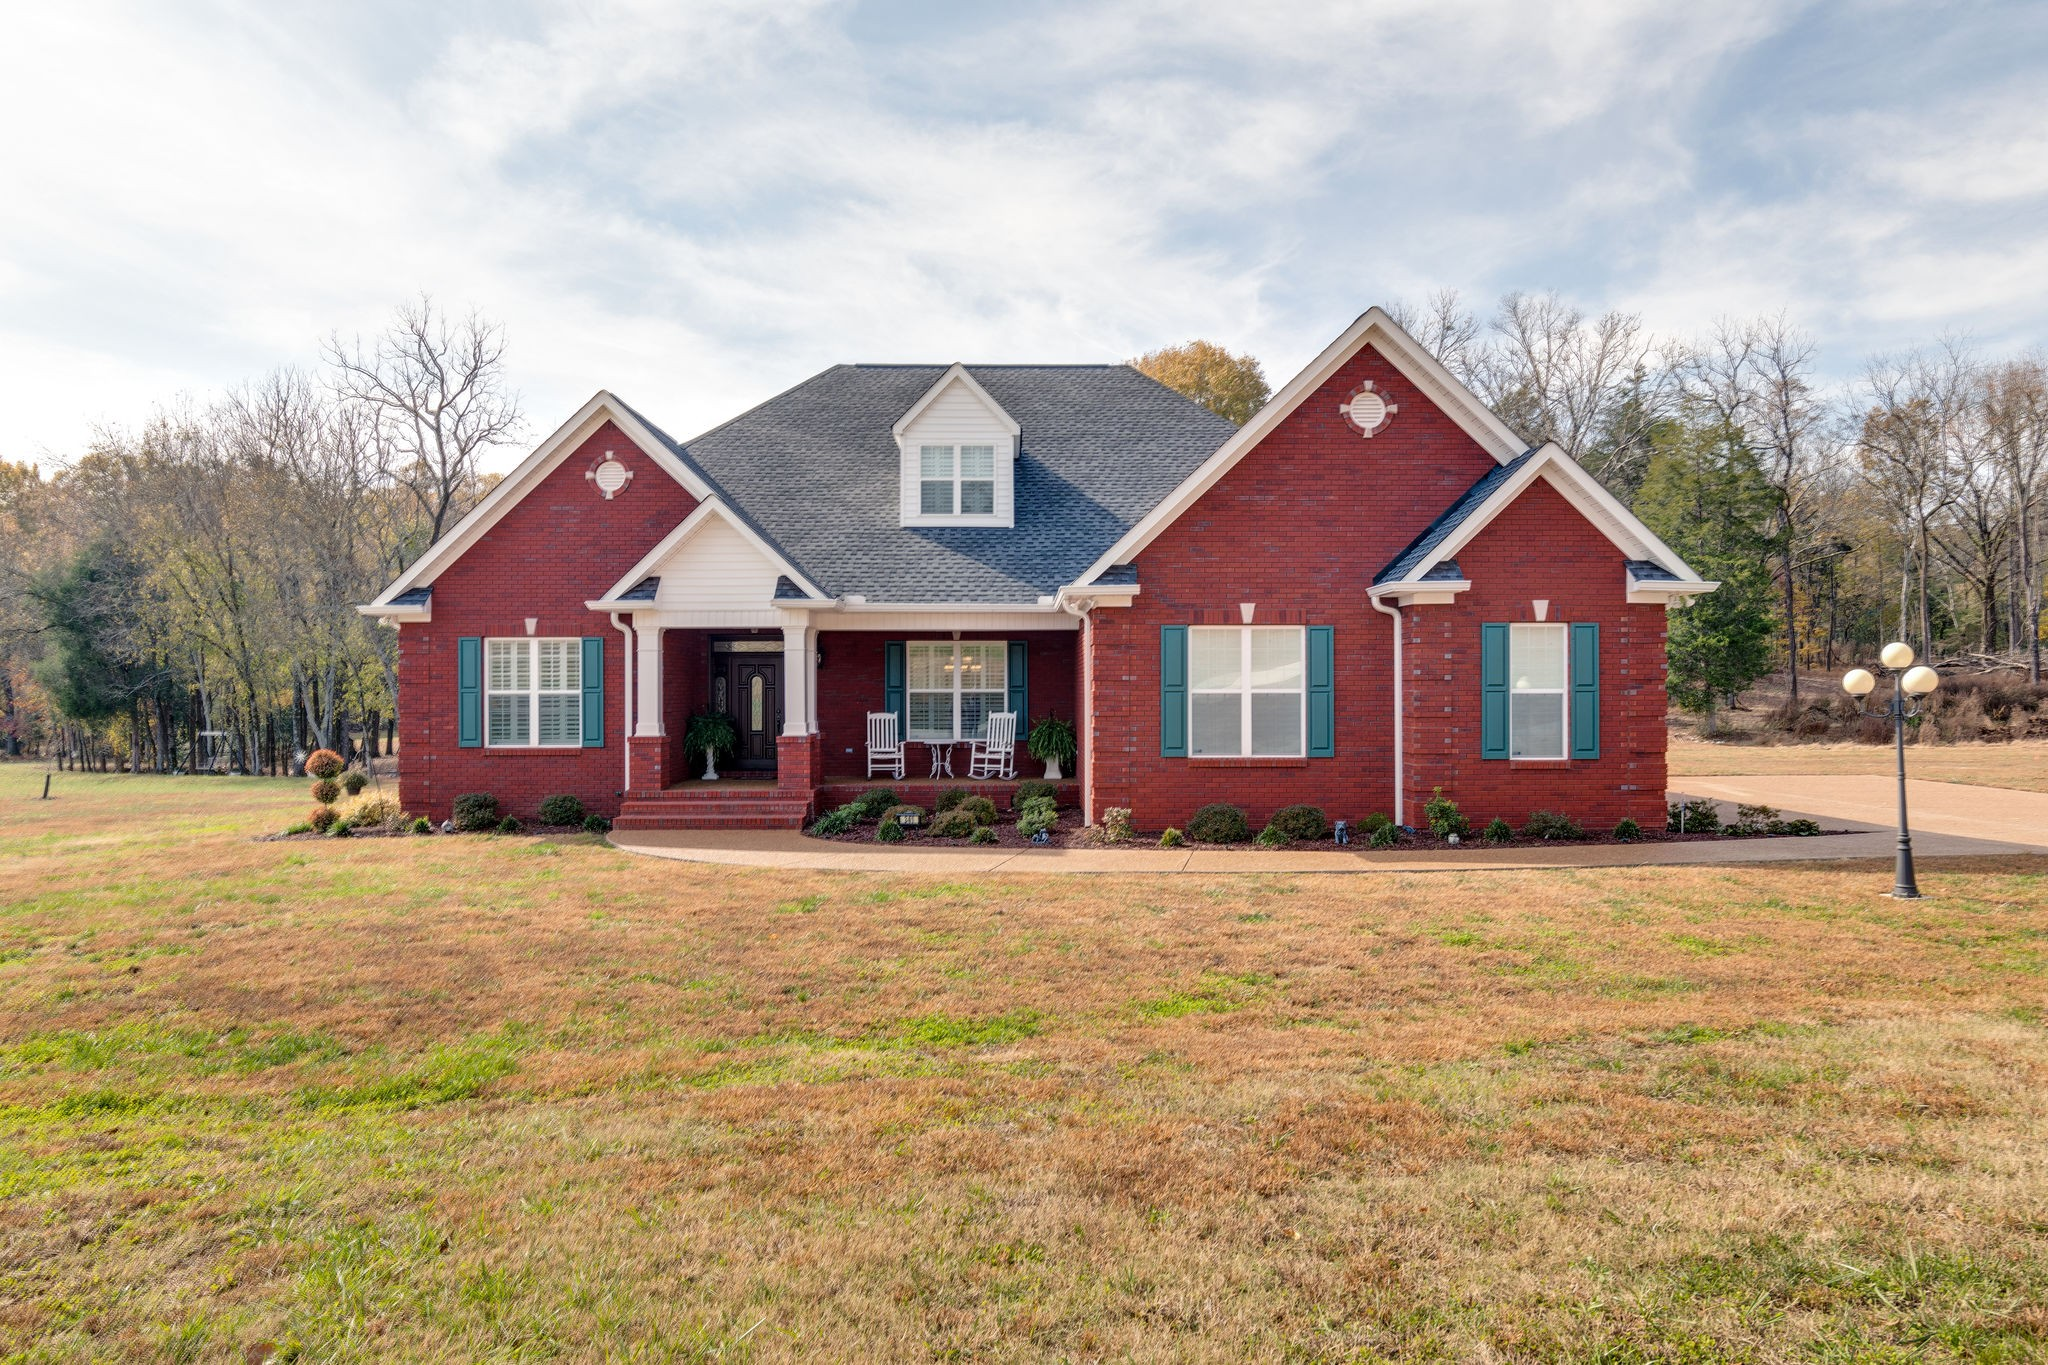 341 Scenic Cir, Pulaski, TN 38478 - Pulaski, TN real estate listing